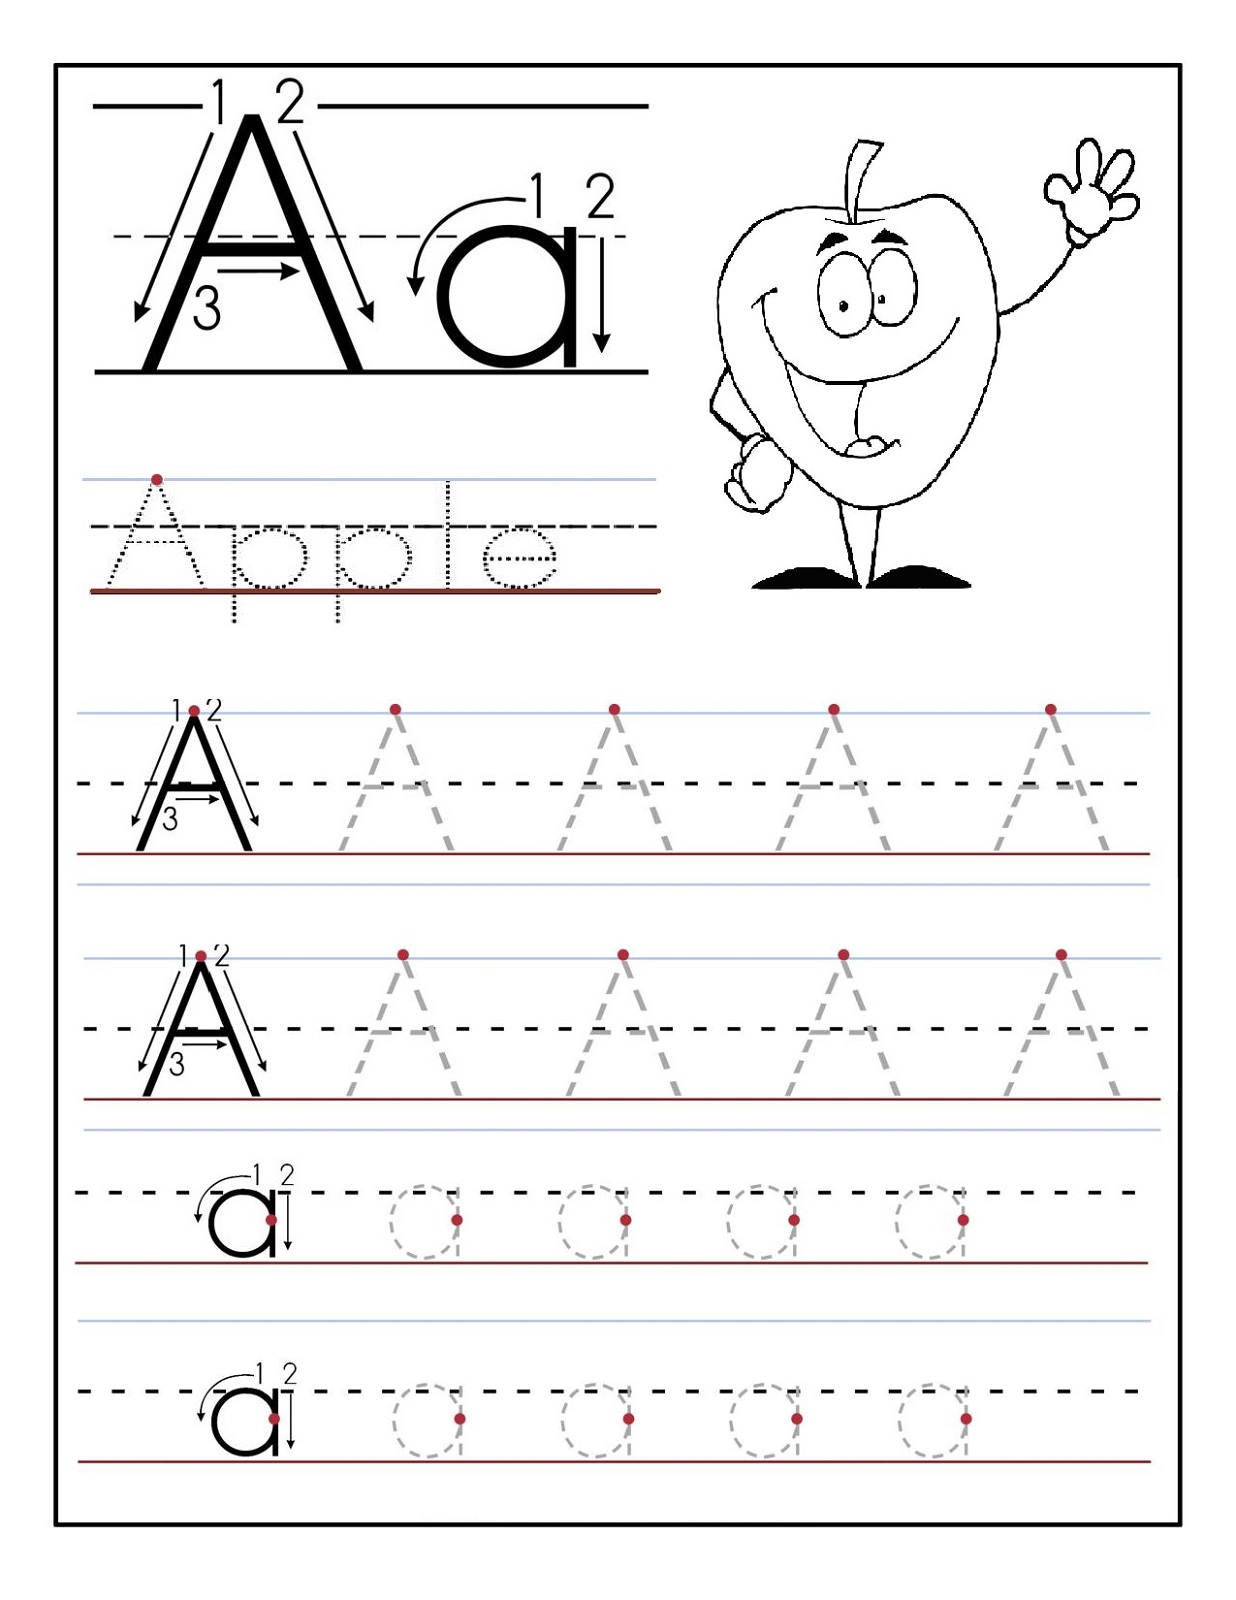 Printables Free Printable Preschool Worksheets Tracing free printable preschool worksheets tracing abitlikethis tracing